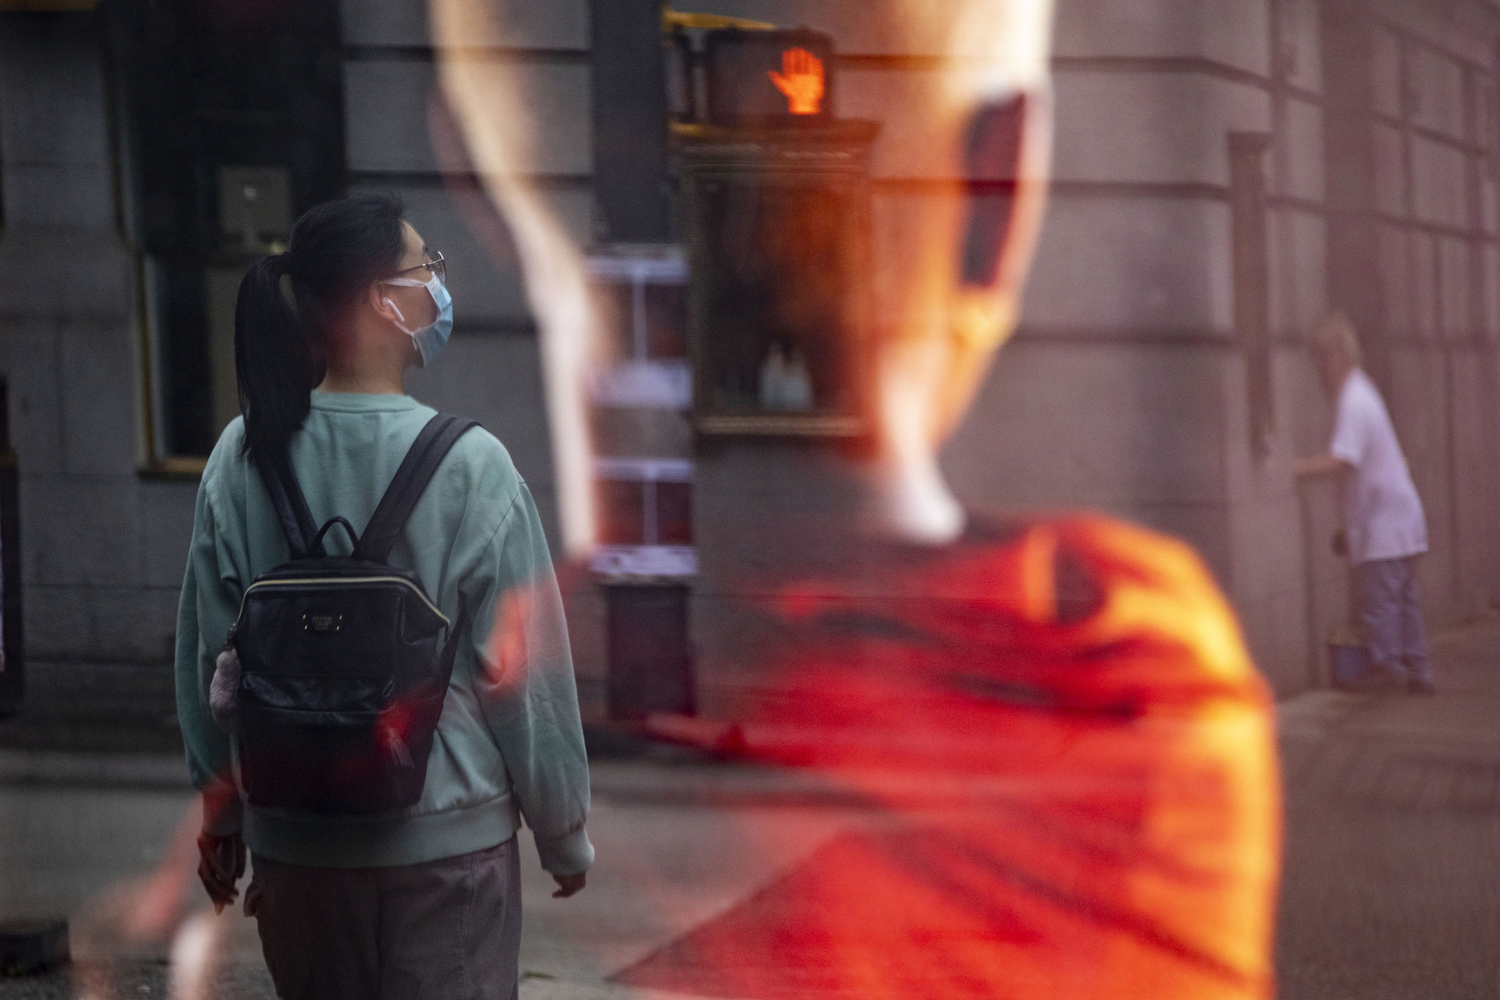 A woman wearing a surgical mask is pictured in a reflection from an advertisement in downtown Vancouver on Aug. 6, 2020. (Ben Nelms/CBC Vancouver)